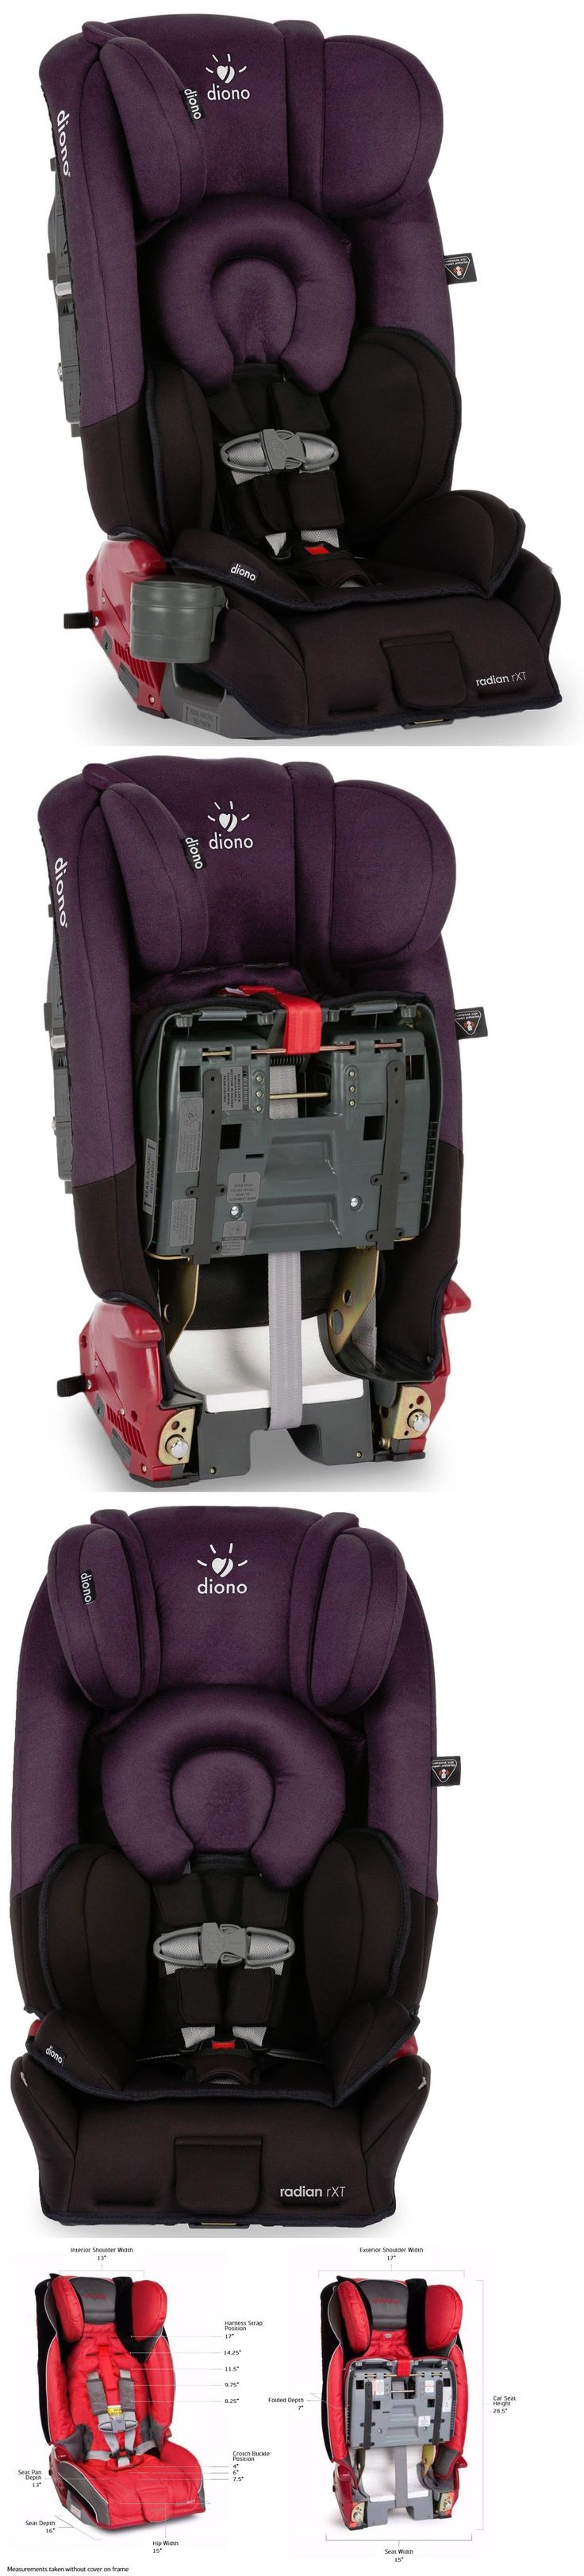 Booster to 80lbs 66694: Diono Radian Rxt Black Plum Convertible + Booster Folding Child Safety Car Seat -> BUY IT NOW ONLY: $284.99 on eBay!